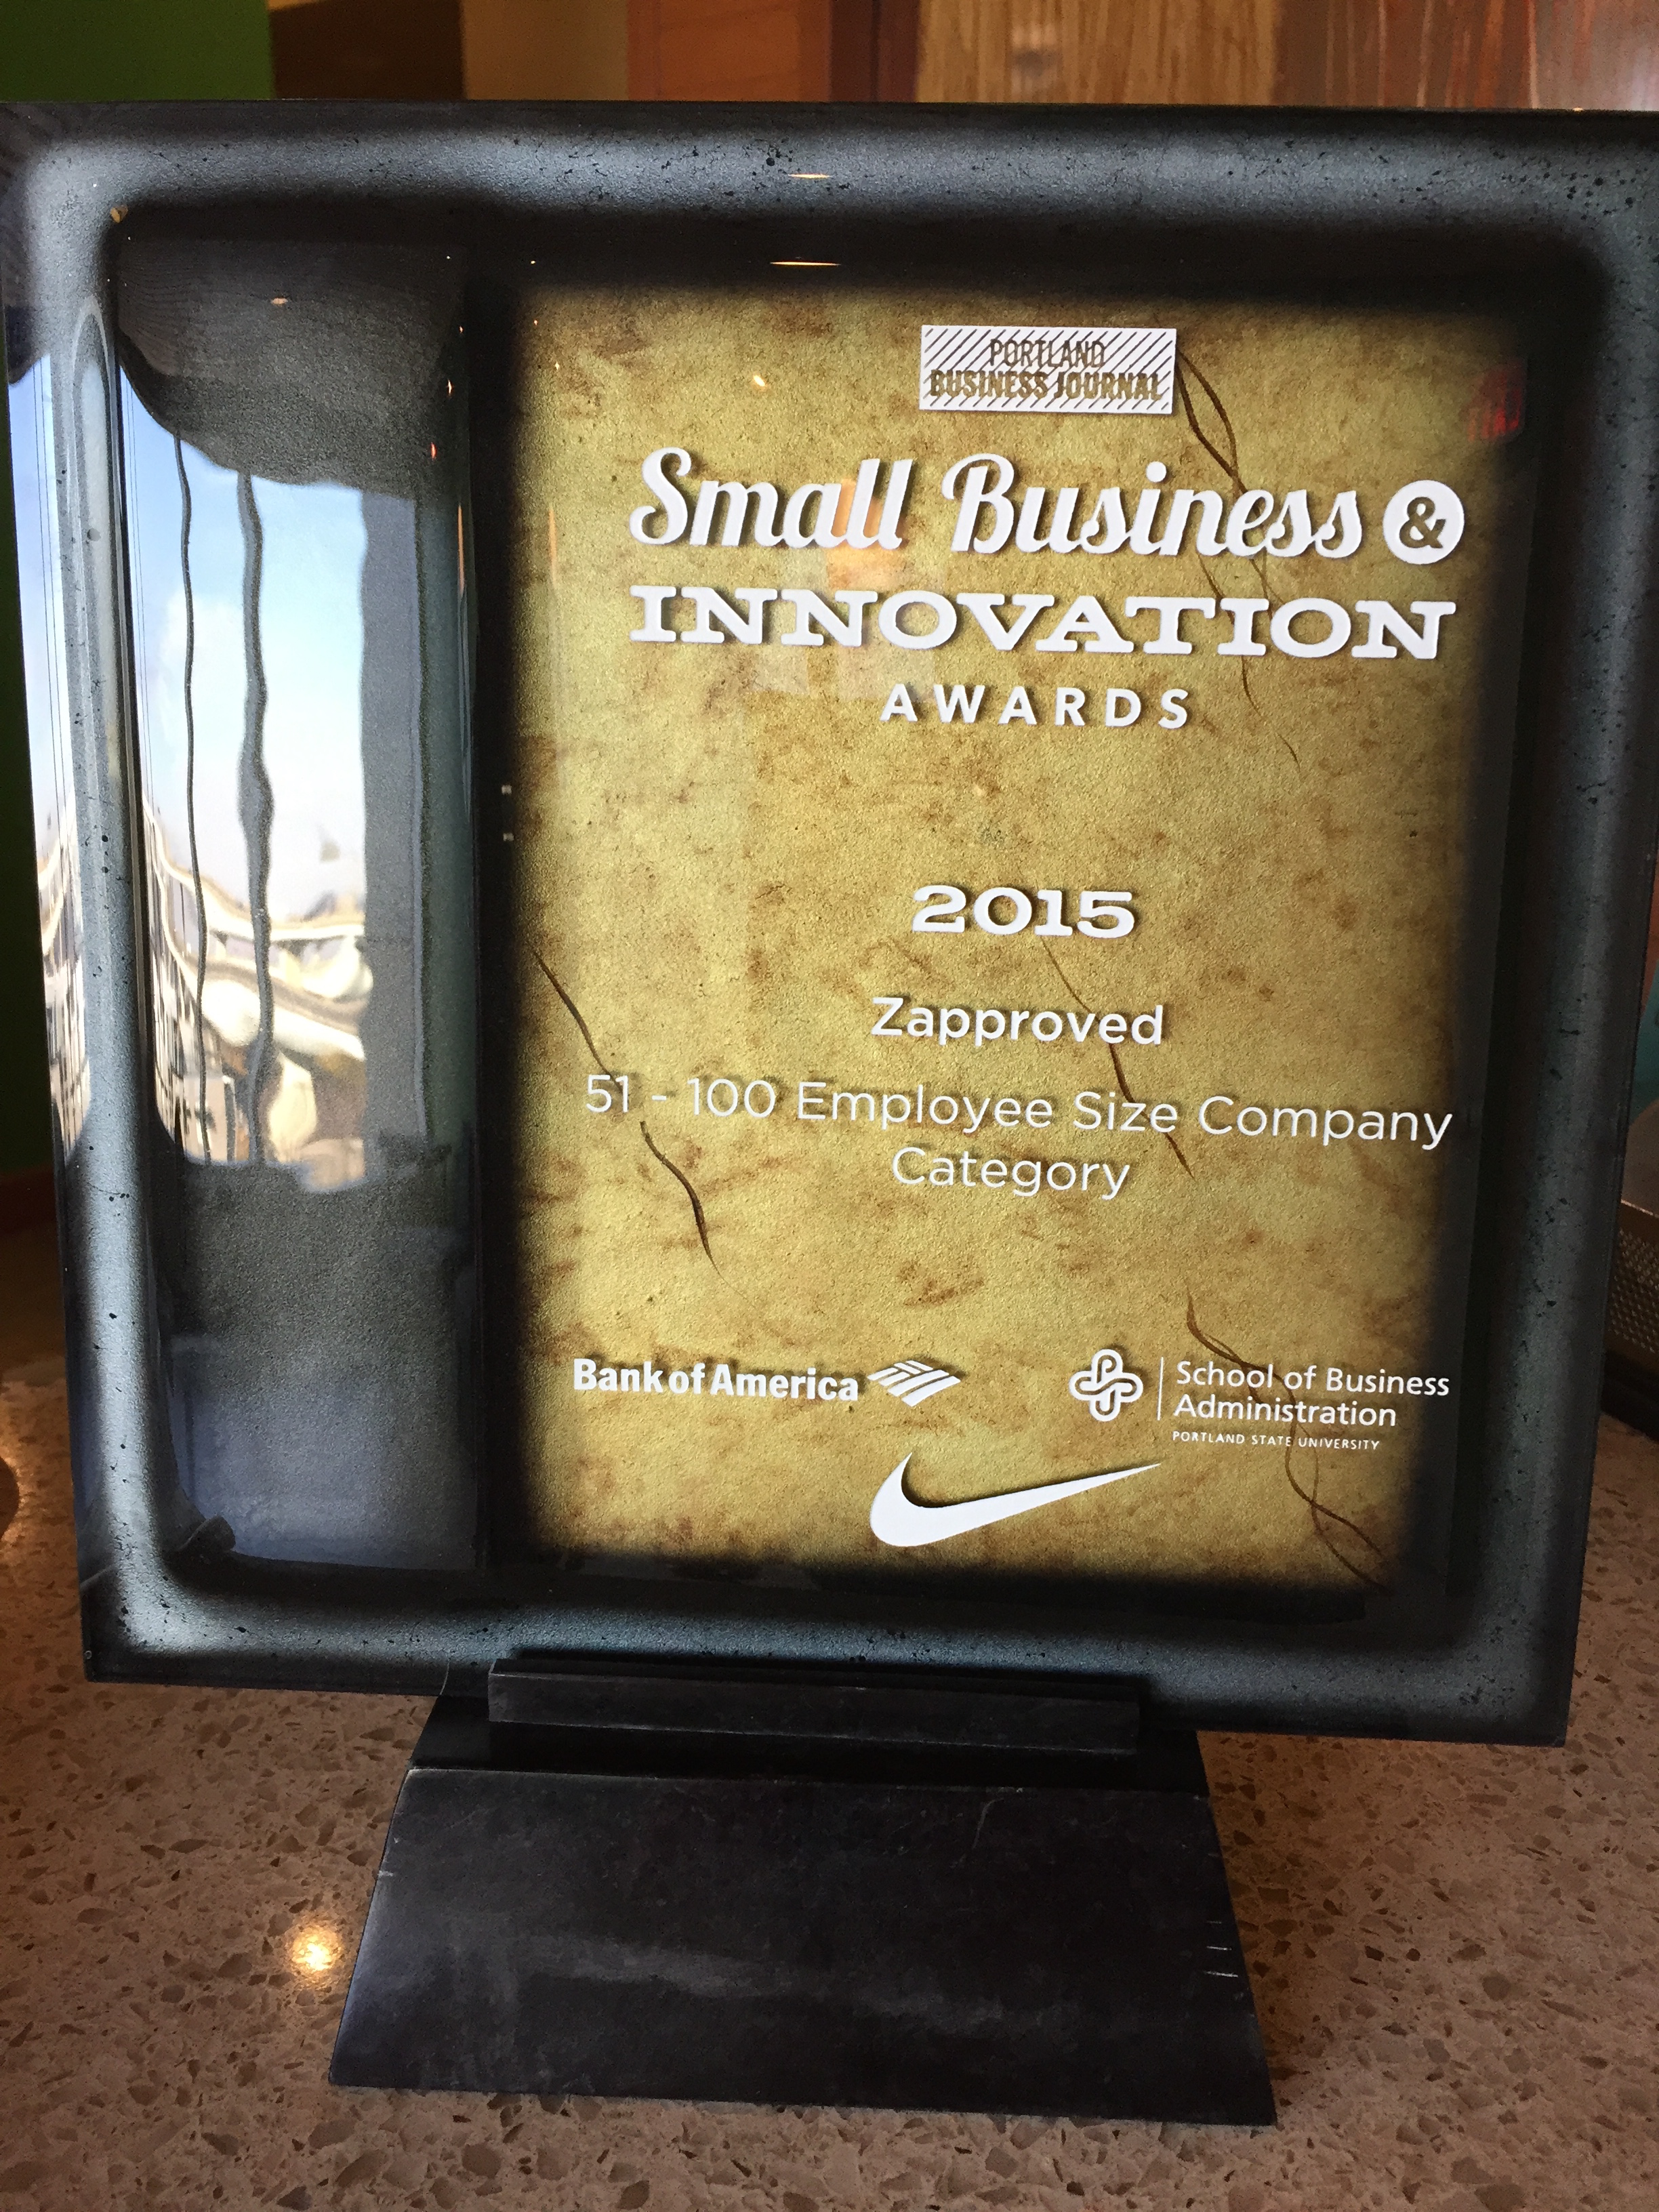 2015 Small Business Innovation Awards